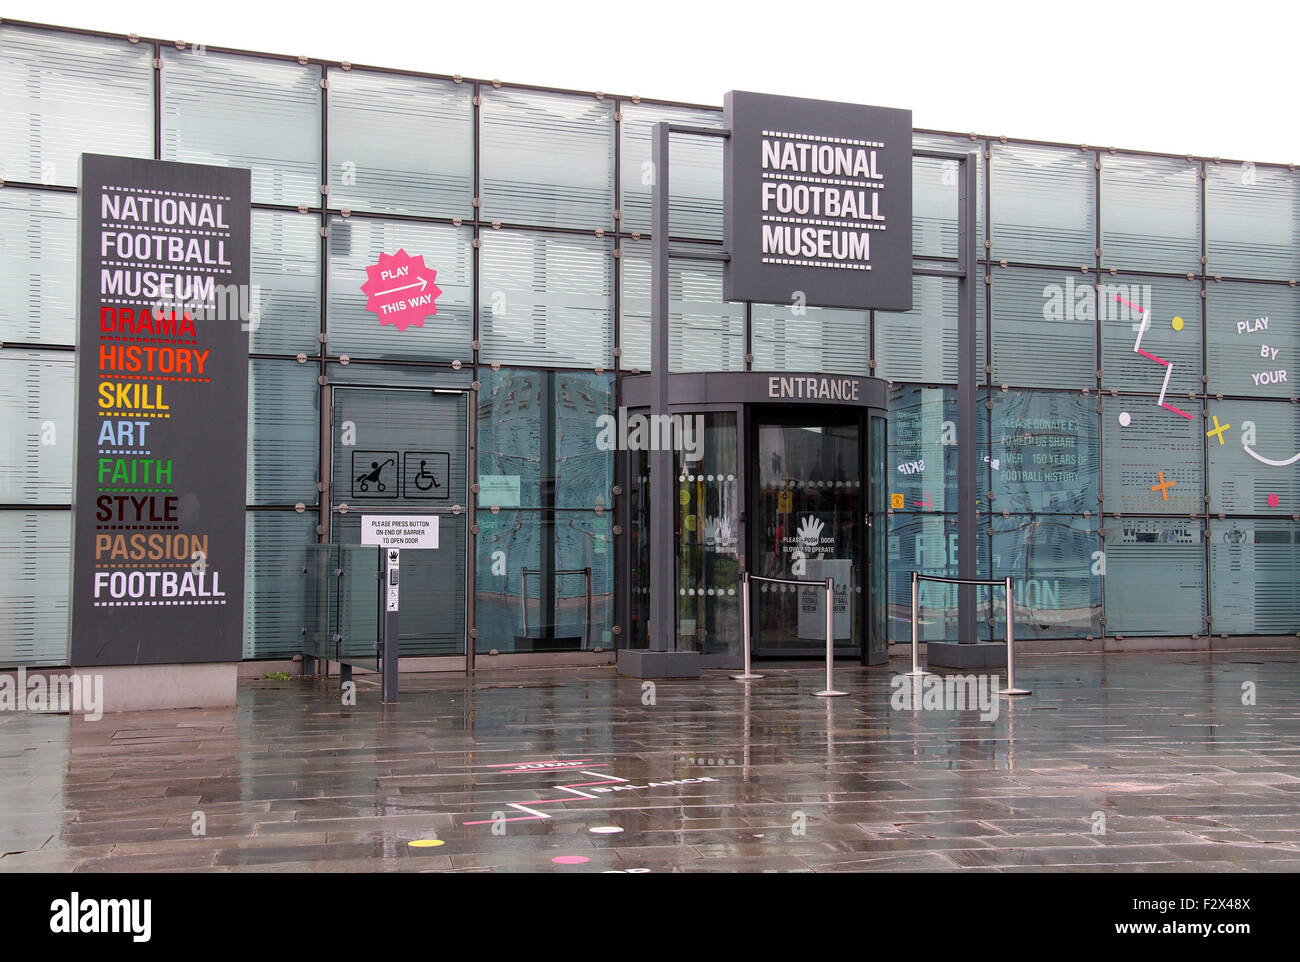 National Football Museum at Manchester in the rain. - Stock Image